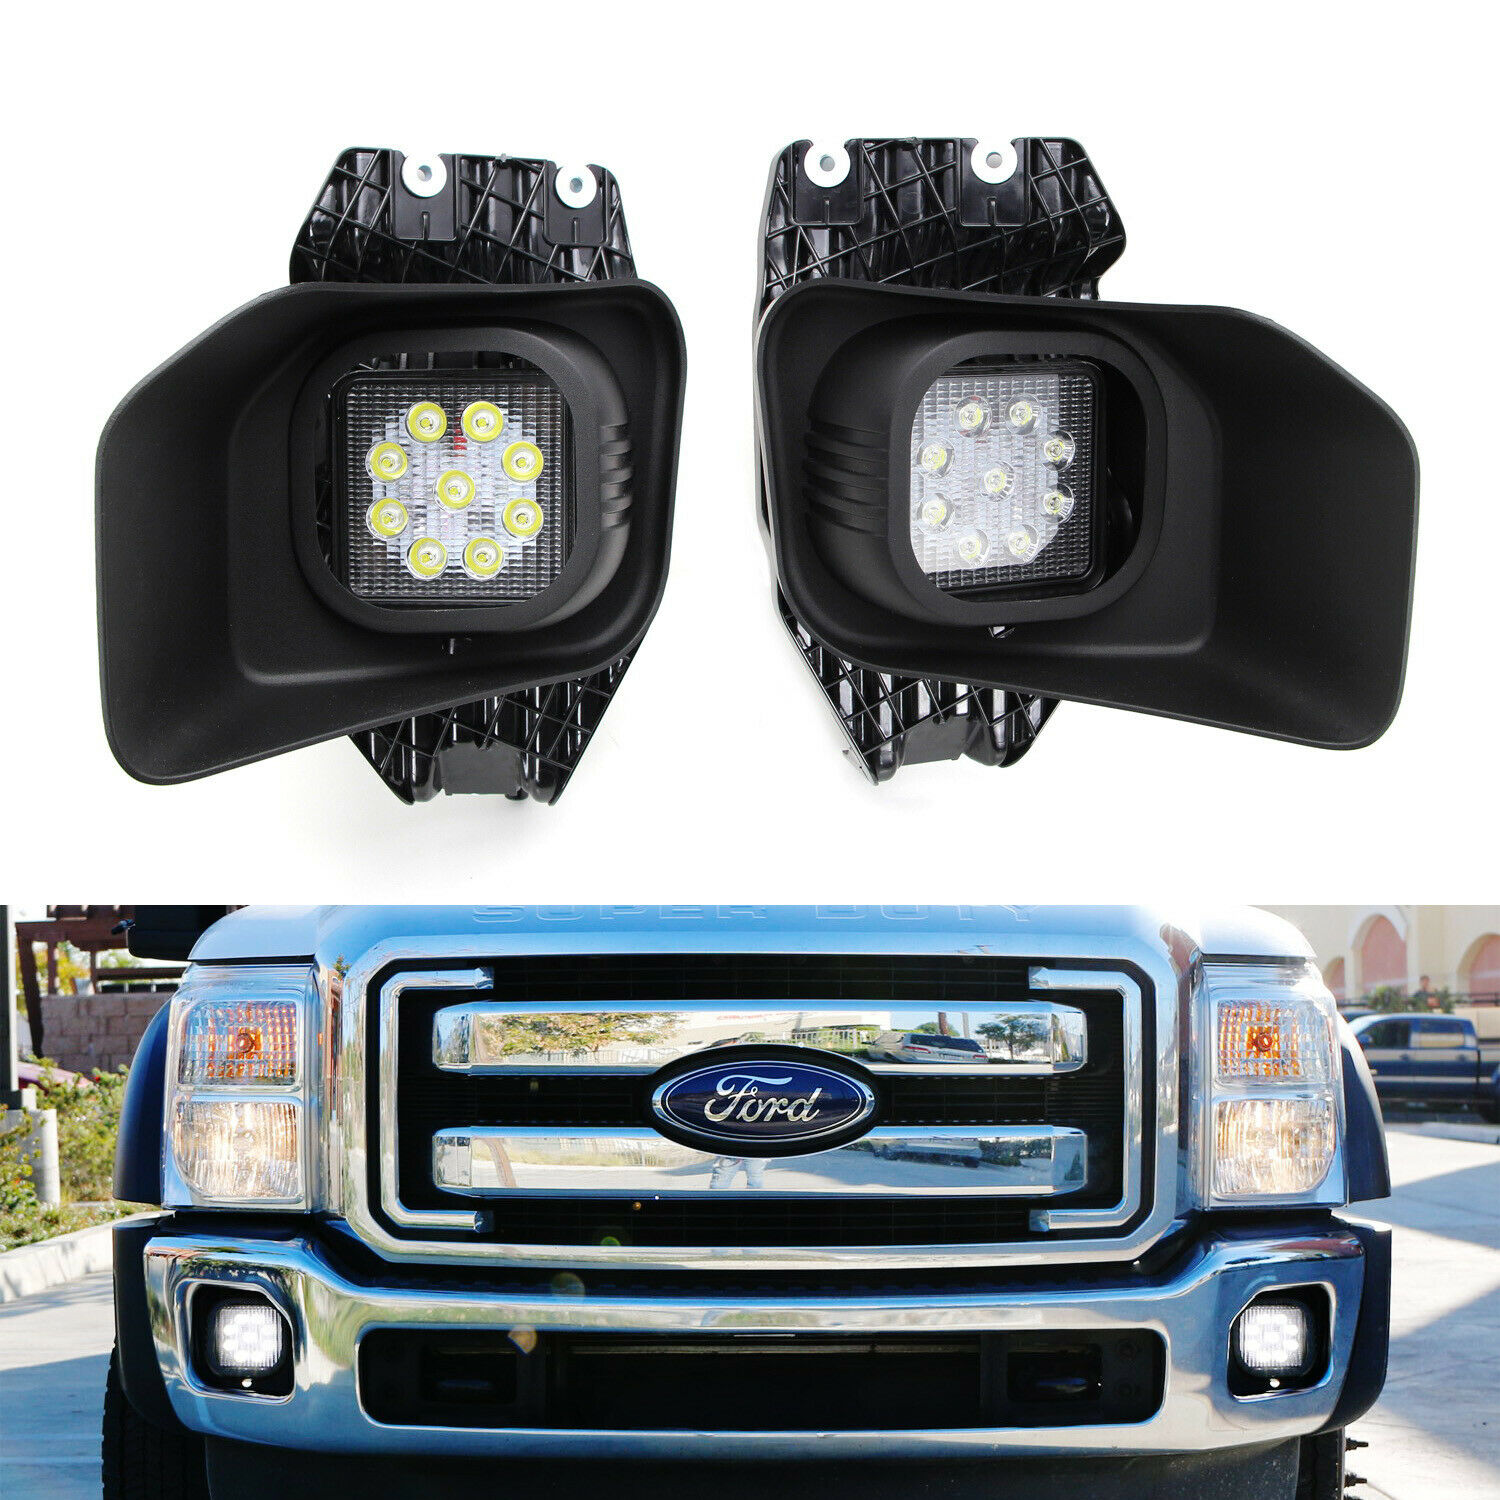 27w Led Fog Lights W Bezels Brackets Wiring For 11 16 F250 F350 Description Three Light Switches With Exposed Wiringjpg 1 Of 12only 3 Available